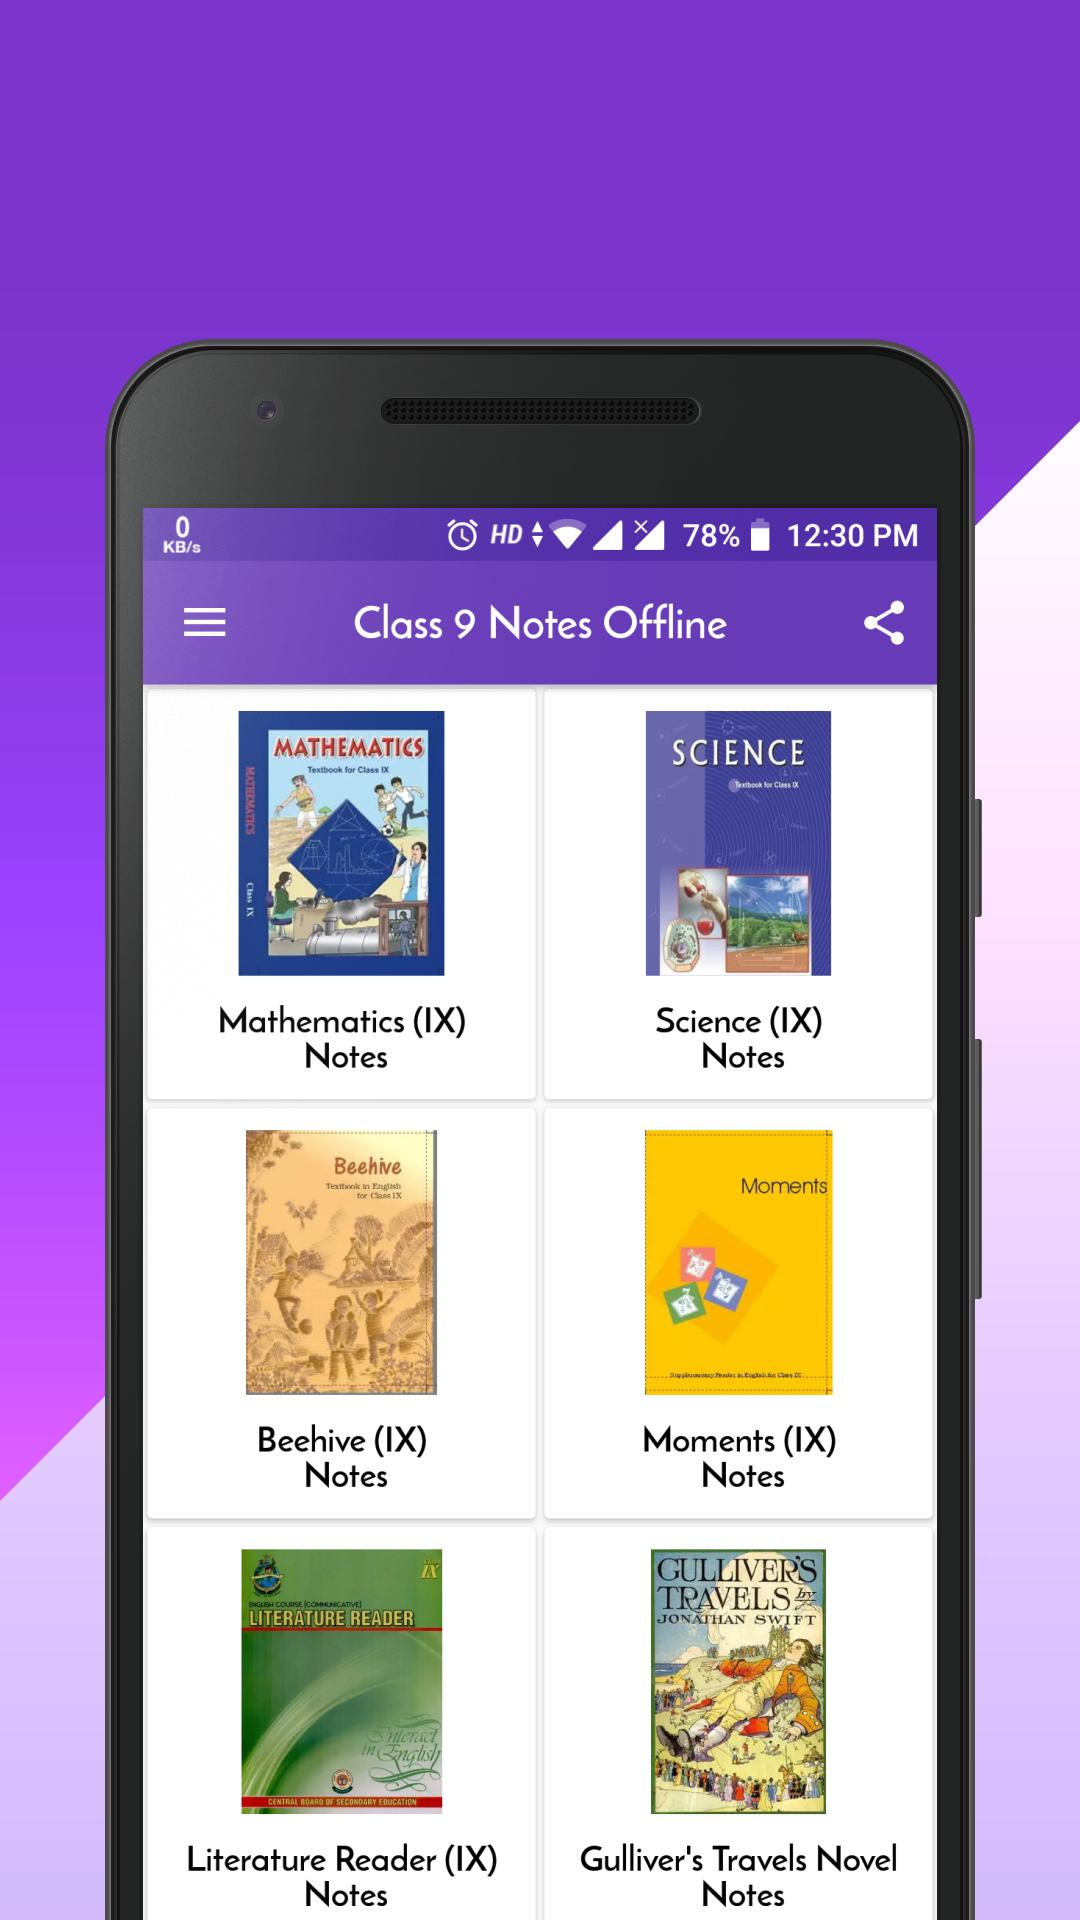 Class 9 Notes Offline for Android - APK Download